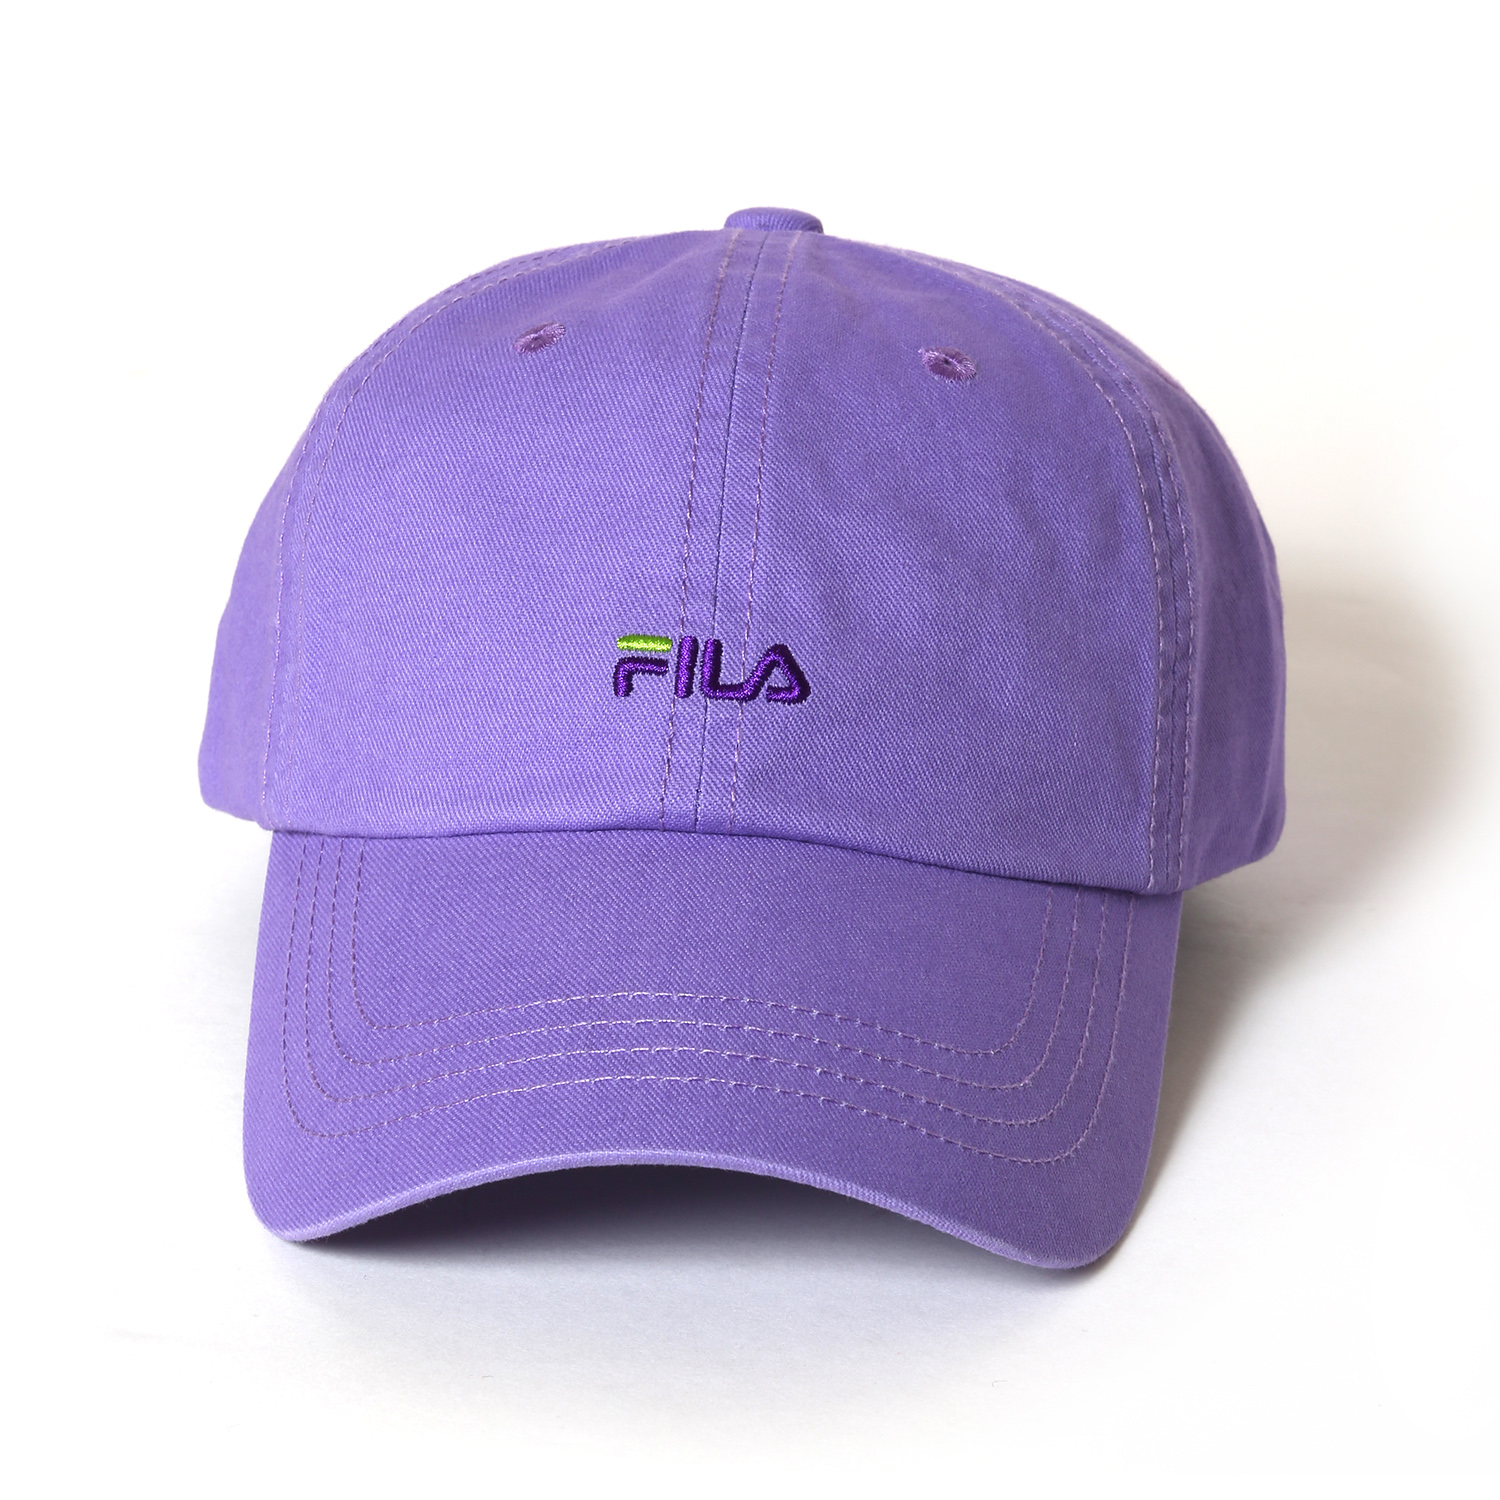 FILA BASIC CAP EVANGELION LIMITED (PURPLE(EVA-01))